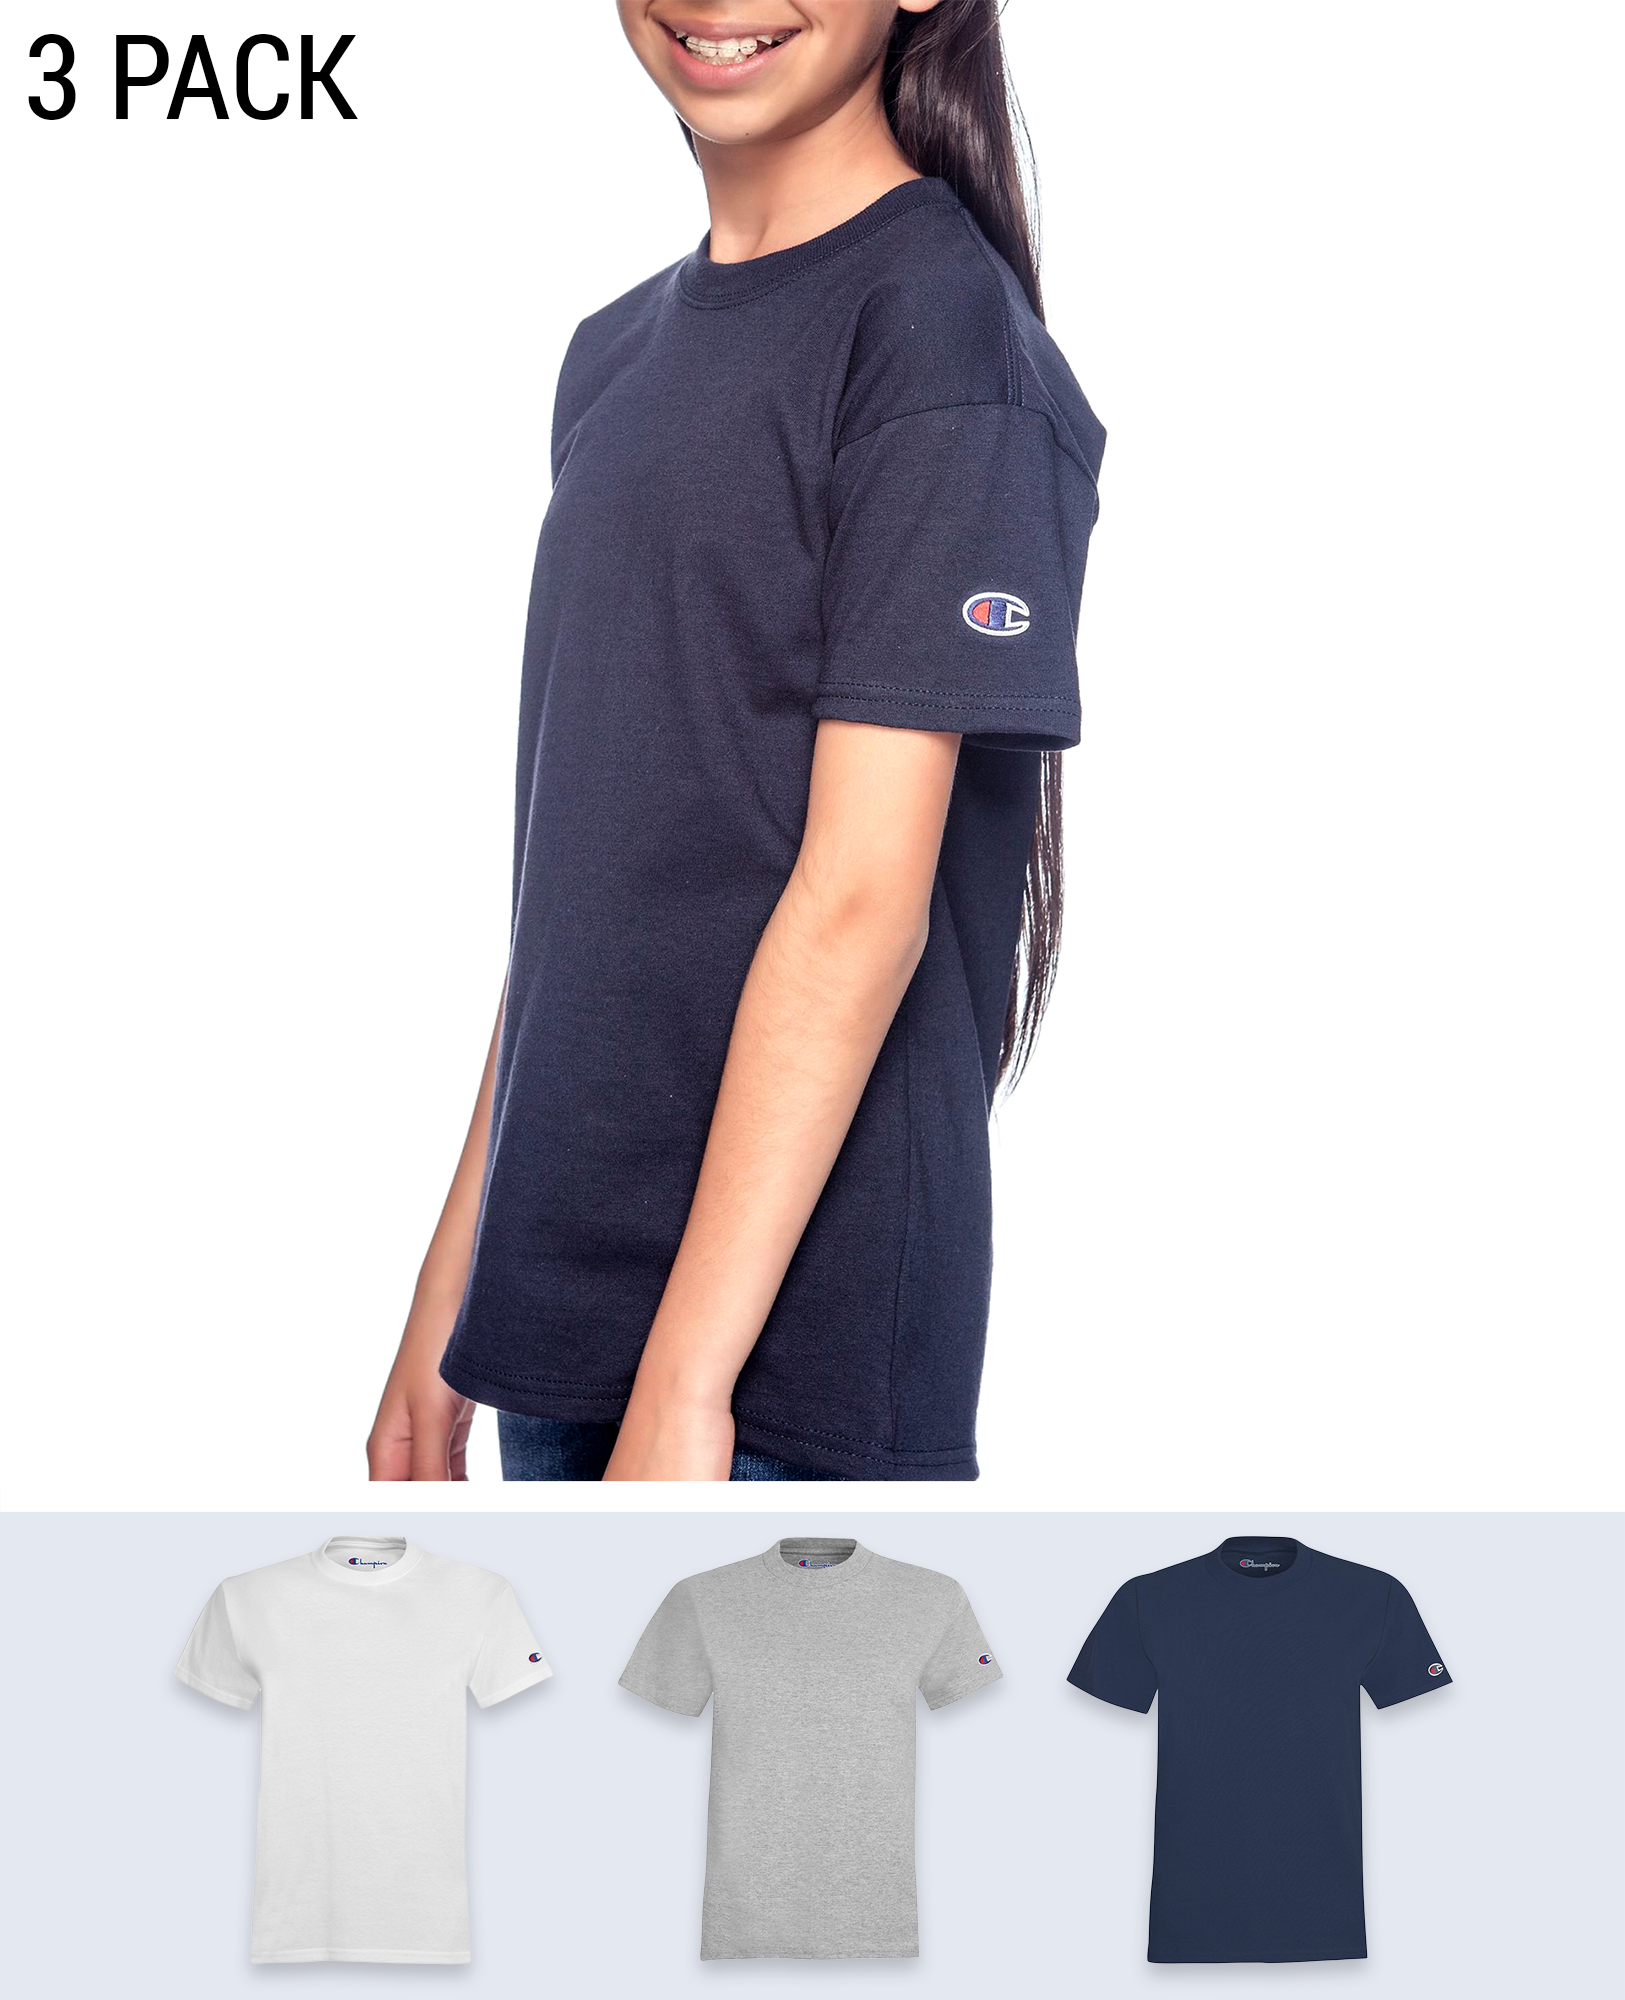 3 pack Sleeve Logo Youth's T-shirt - T-Shirts - Champion - BRANMA